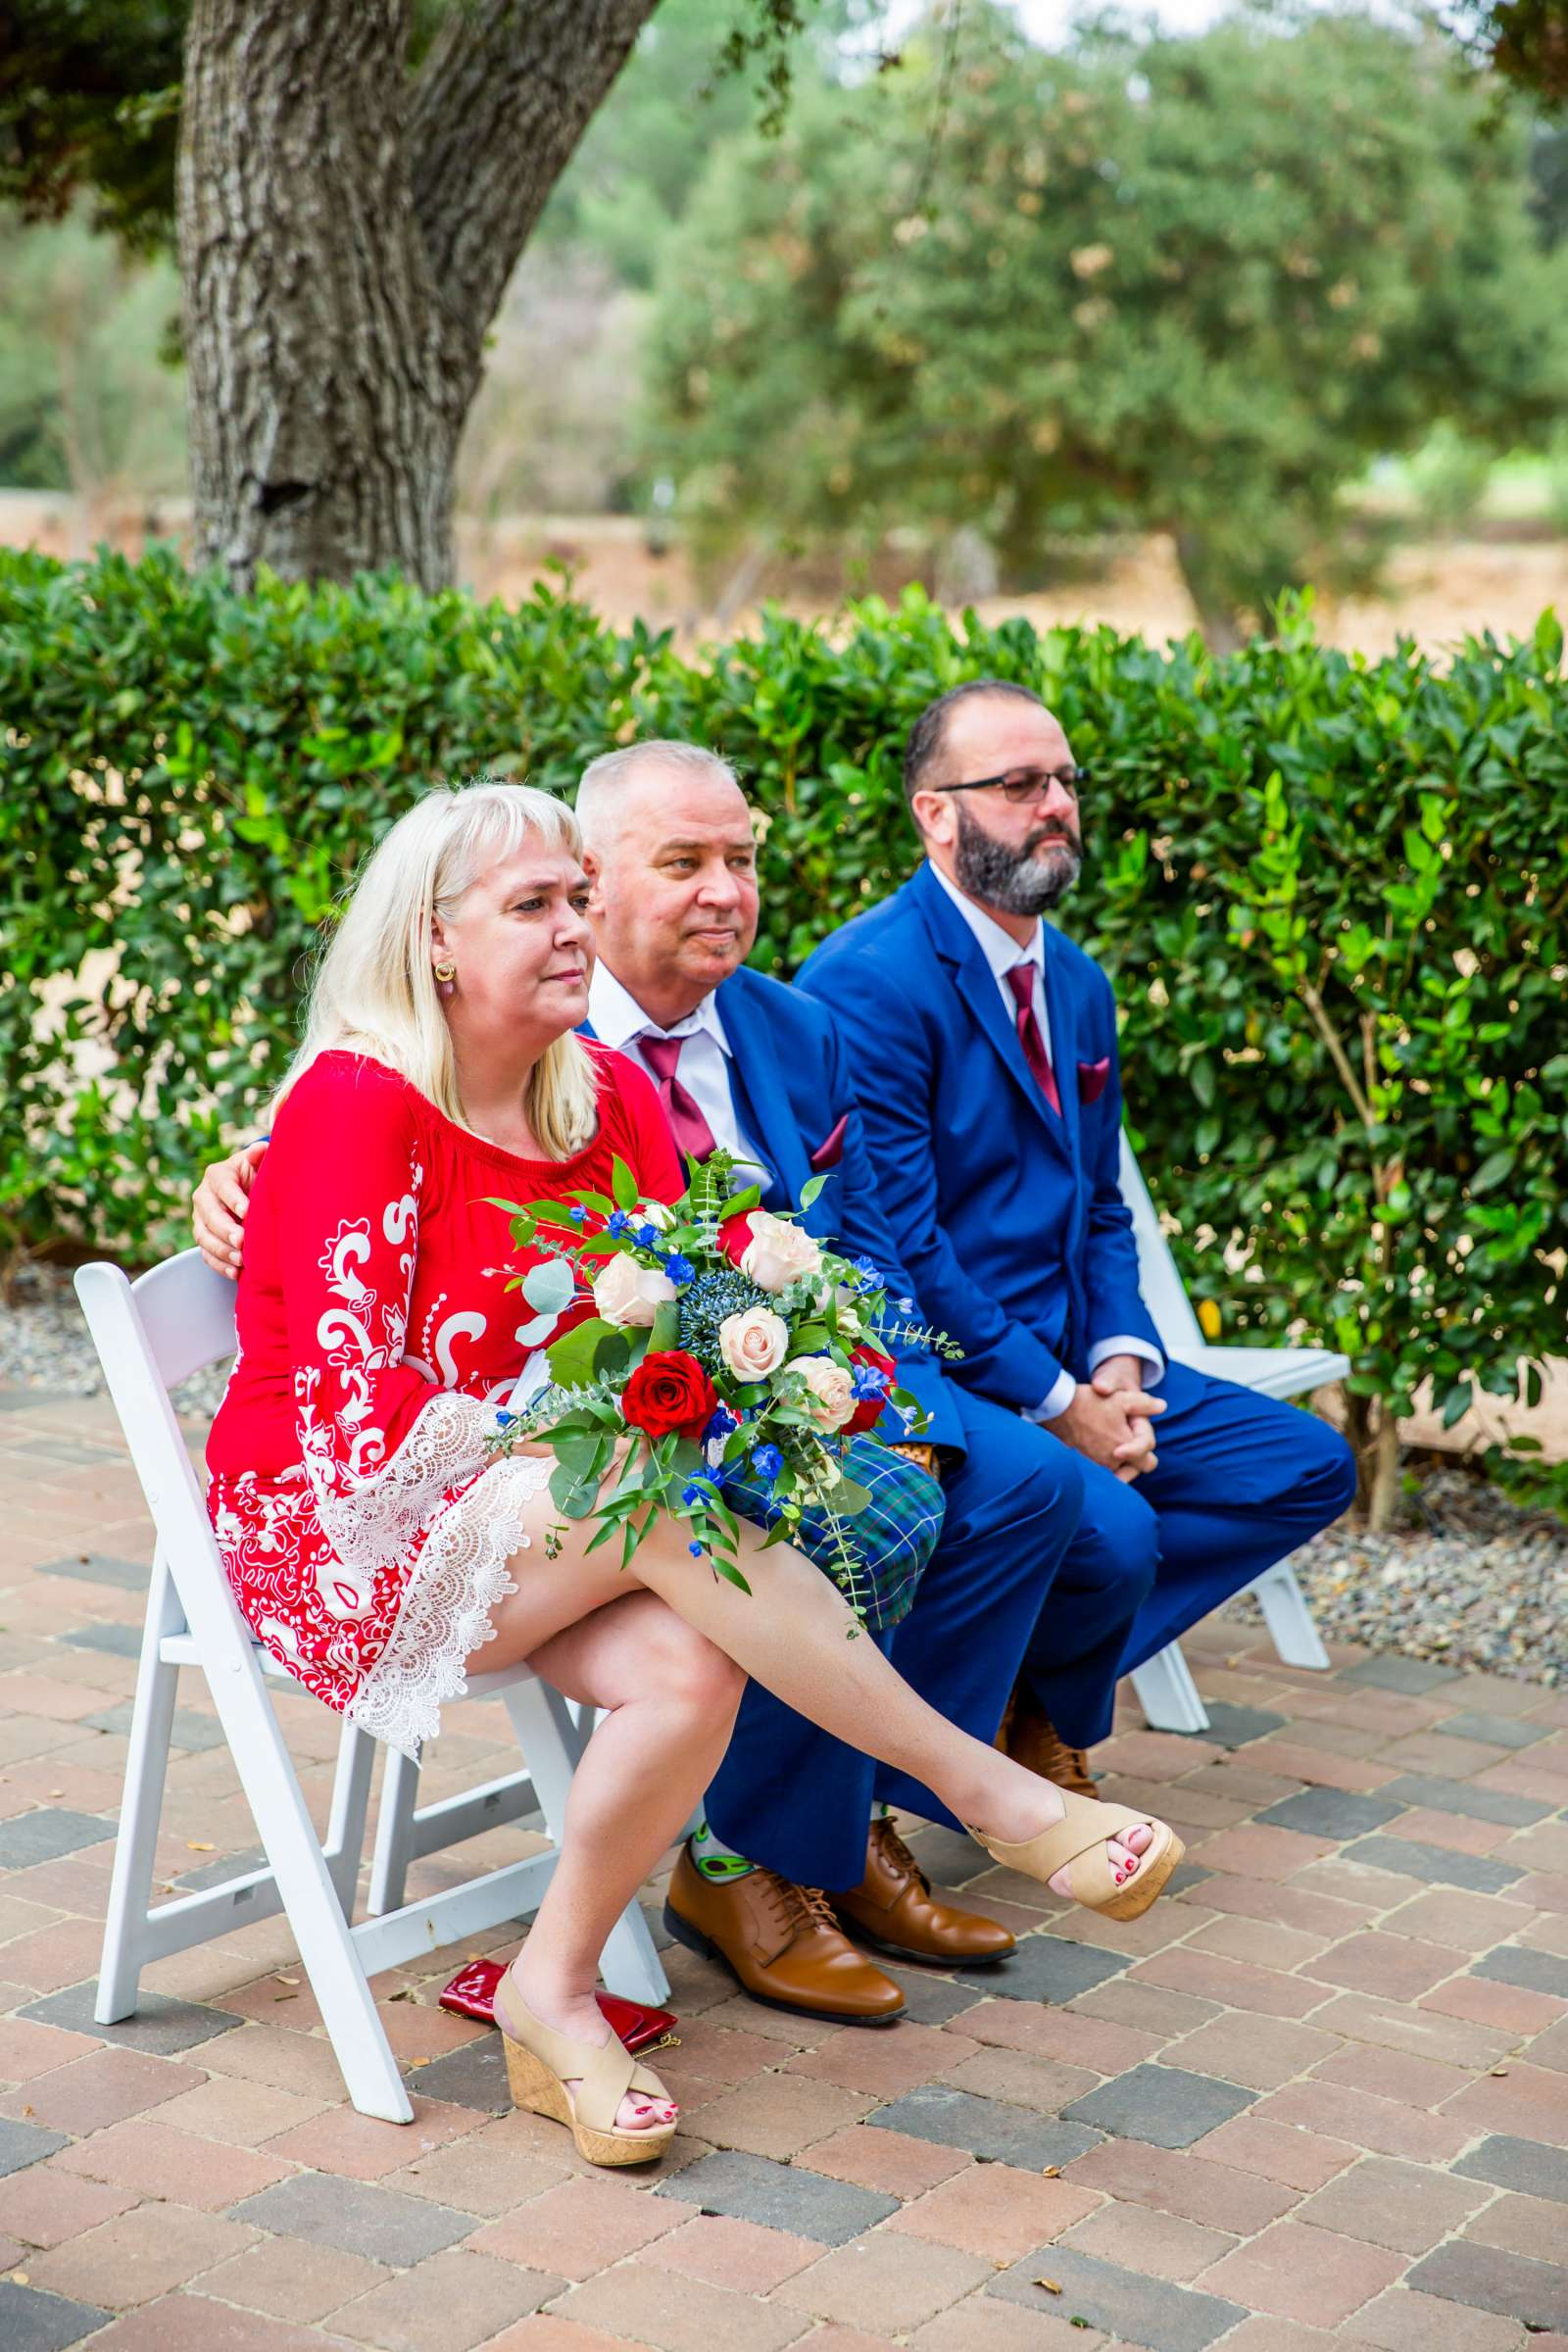 Mt Woodson Castle Wedding, Valerie and Ian Wedding Photo #63 by True Photography